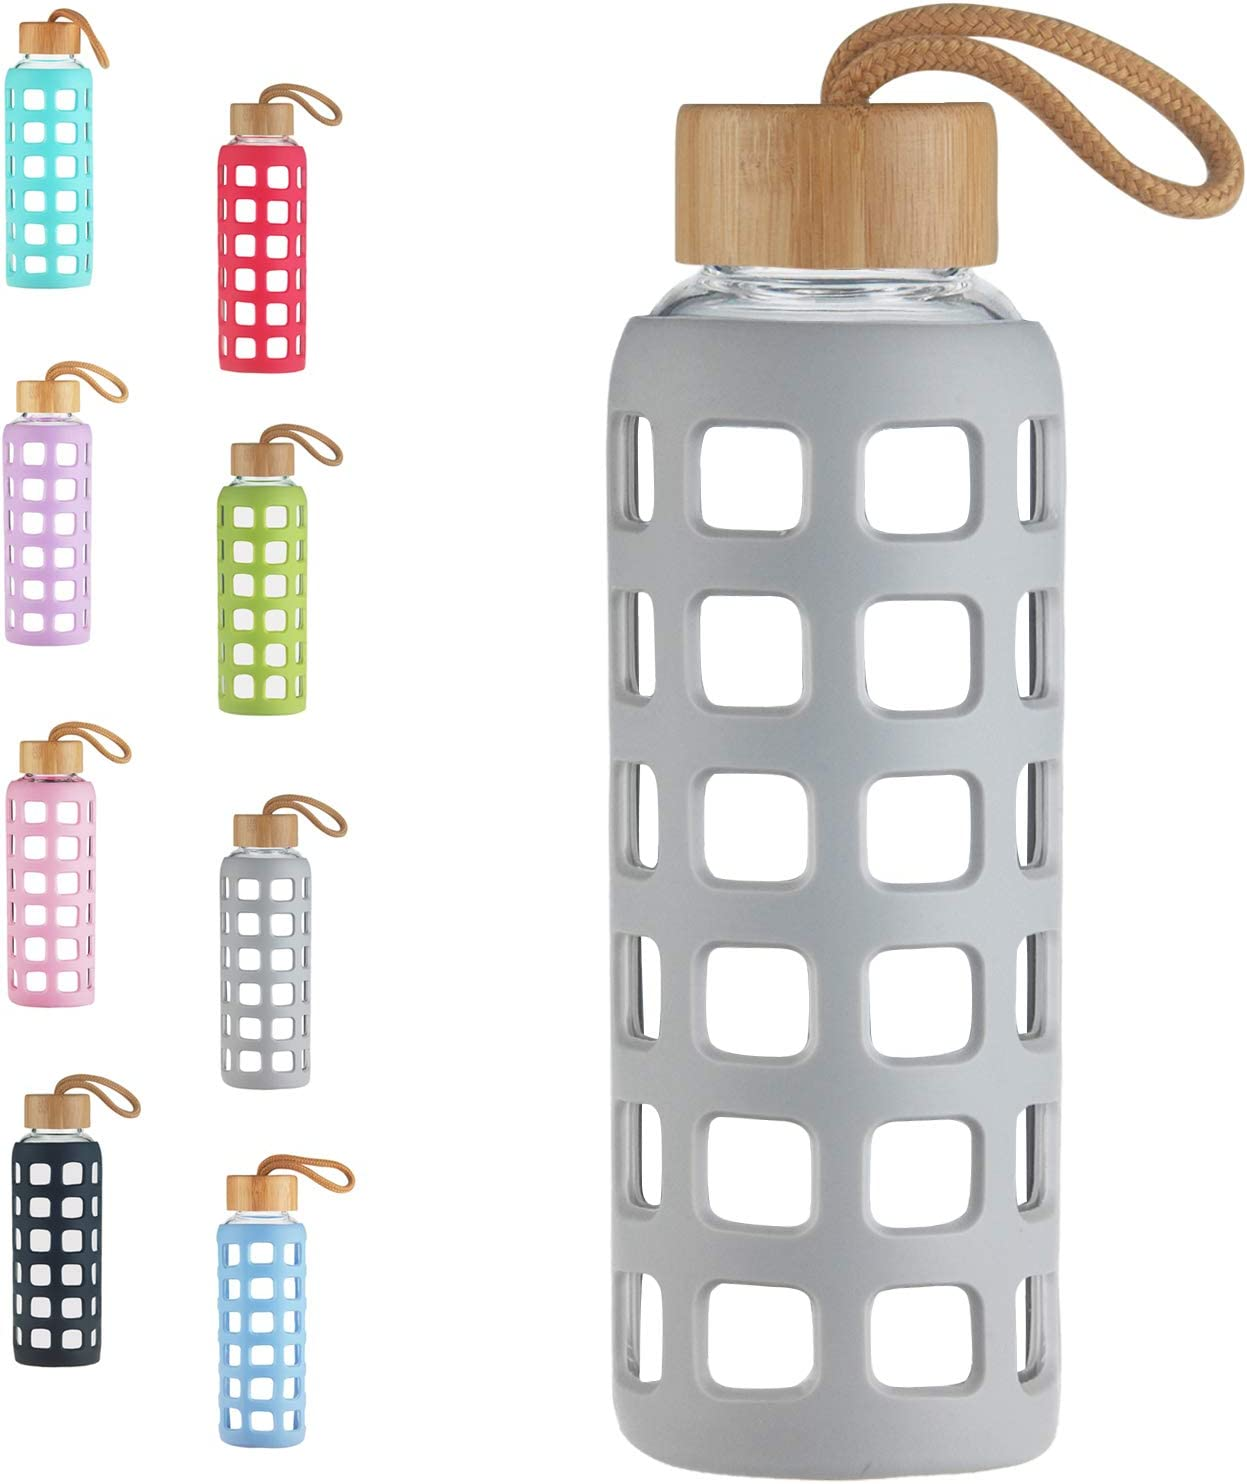 Cleesmil BPA Free Glass Water Bottle with Anti-Slip Silicone Sleeve with Bamboo Lid Leak Proof 22 oz (Grey